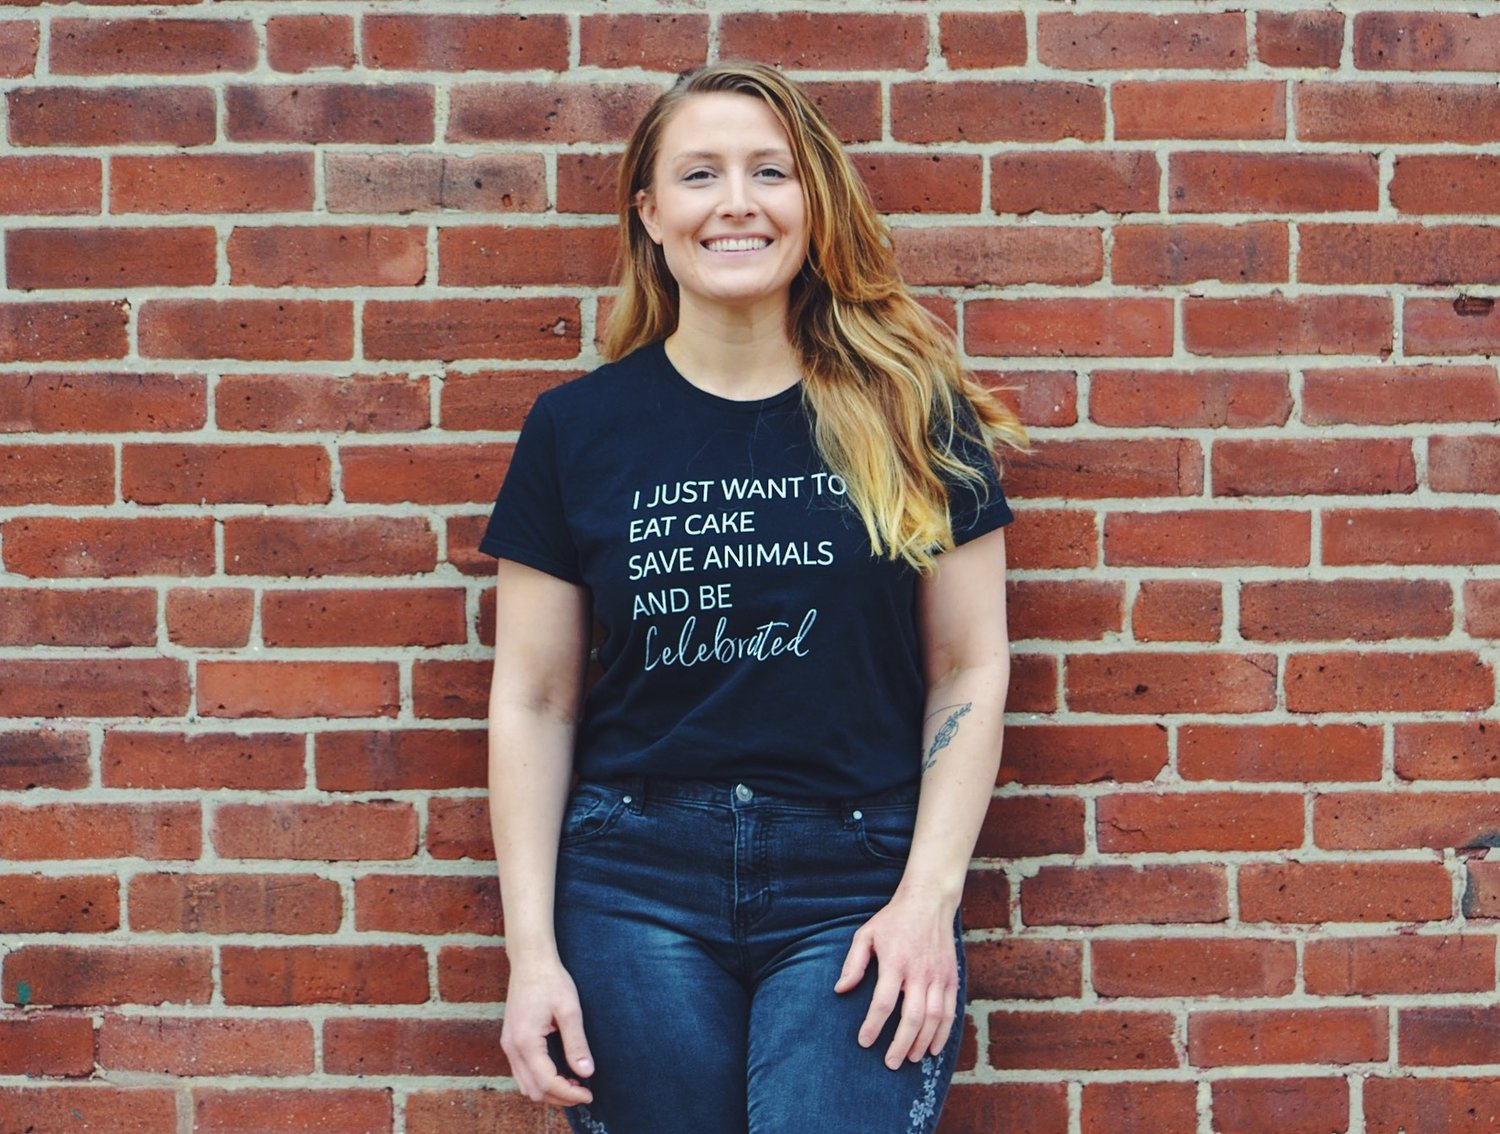 Becky Morris, Owner and Head Pastry Artist - A native of Rhode Island, Becky's journey into the love of pastry dates back to the pure joy of watching her mom bake for the holidays. Her knack for creating decadent treats was nurtured through the years, as was her passion for delivering happiness with dessert. Becky launched Celebrated in November 2017 to cater to a niche for vegan wedding desserts.  When she's not in the kitchen, you can find her by the side of her fiance, Nick, and playing with her two pups, Gryffin and Baby.